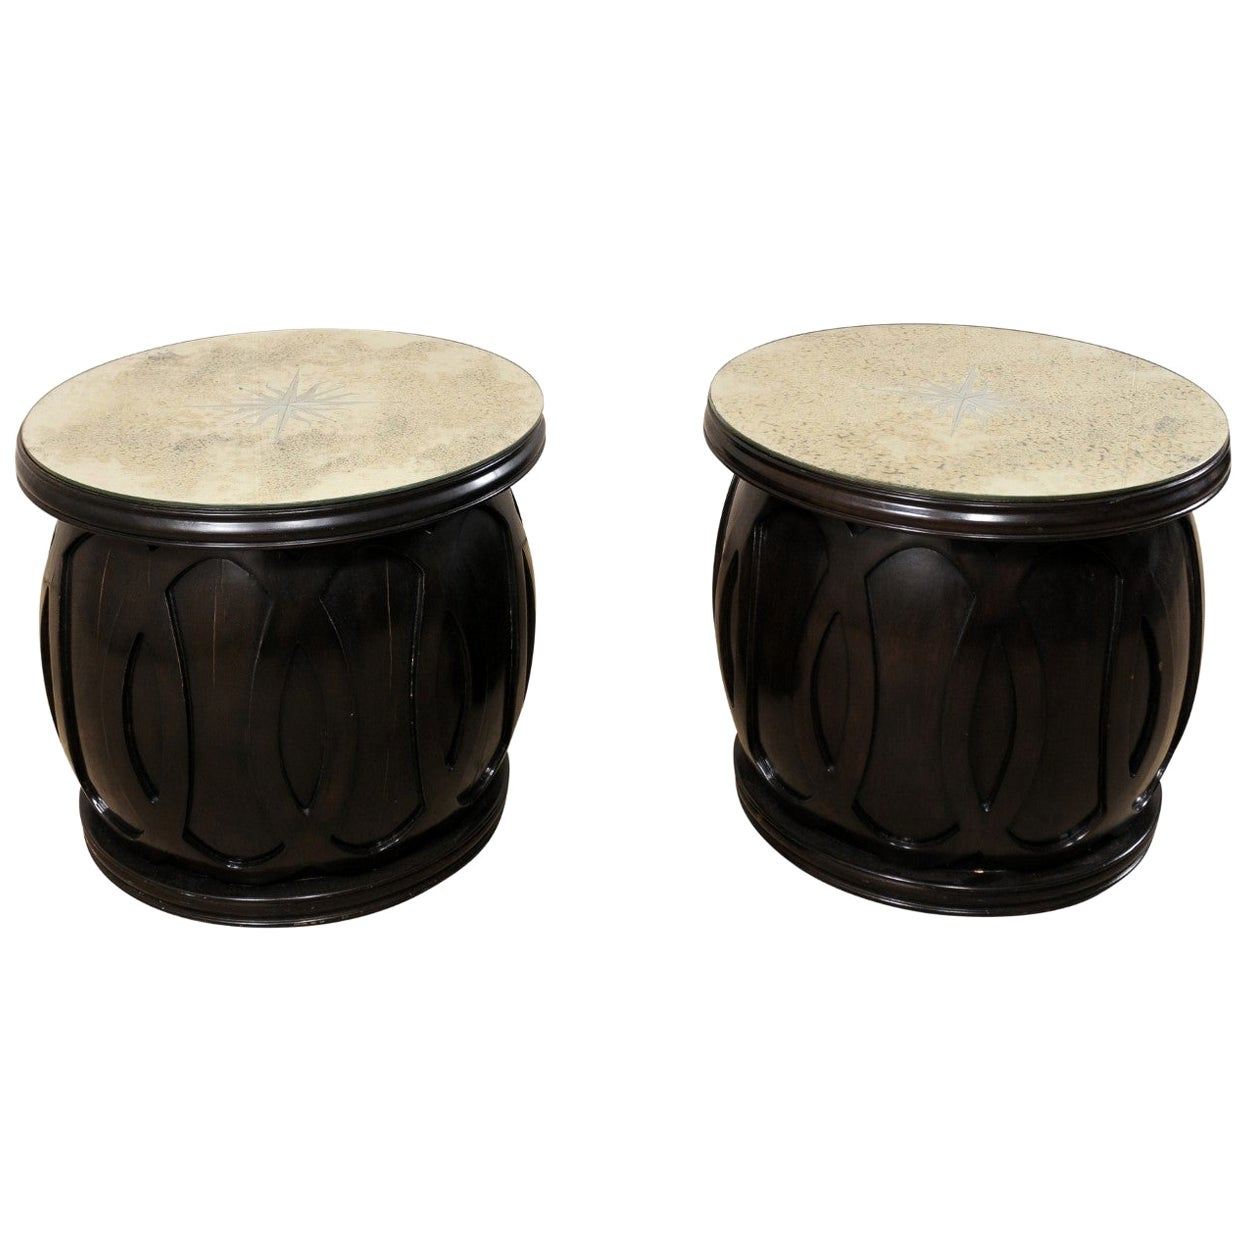 Drum Style Side Tables with Artisan Crafted Verre Églomisé Sunburst Mirror Tops